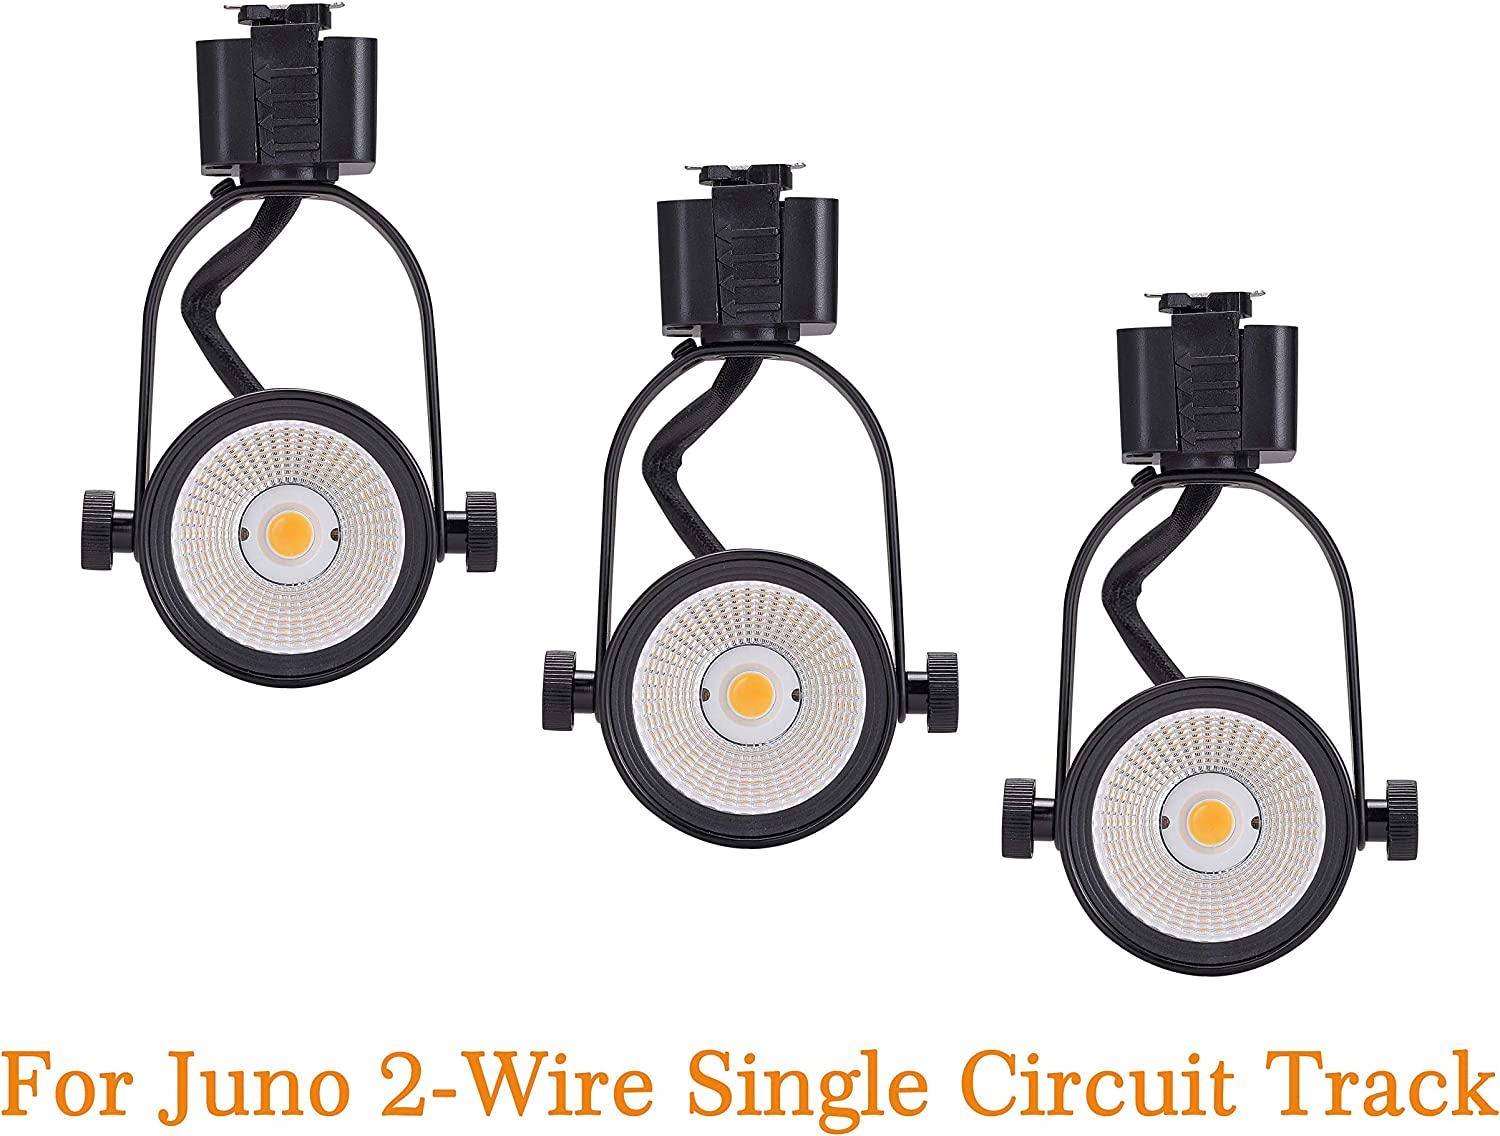 Cloudy Bay Juno Type LED Track Light Head,10W CRI 90 3000K Warm White Dimmable,Adjustable Tilt Angle Track Lighting Fixture 40/° Angle for Accent Retail,Black Finish-3 Pack